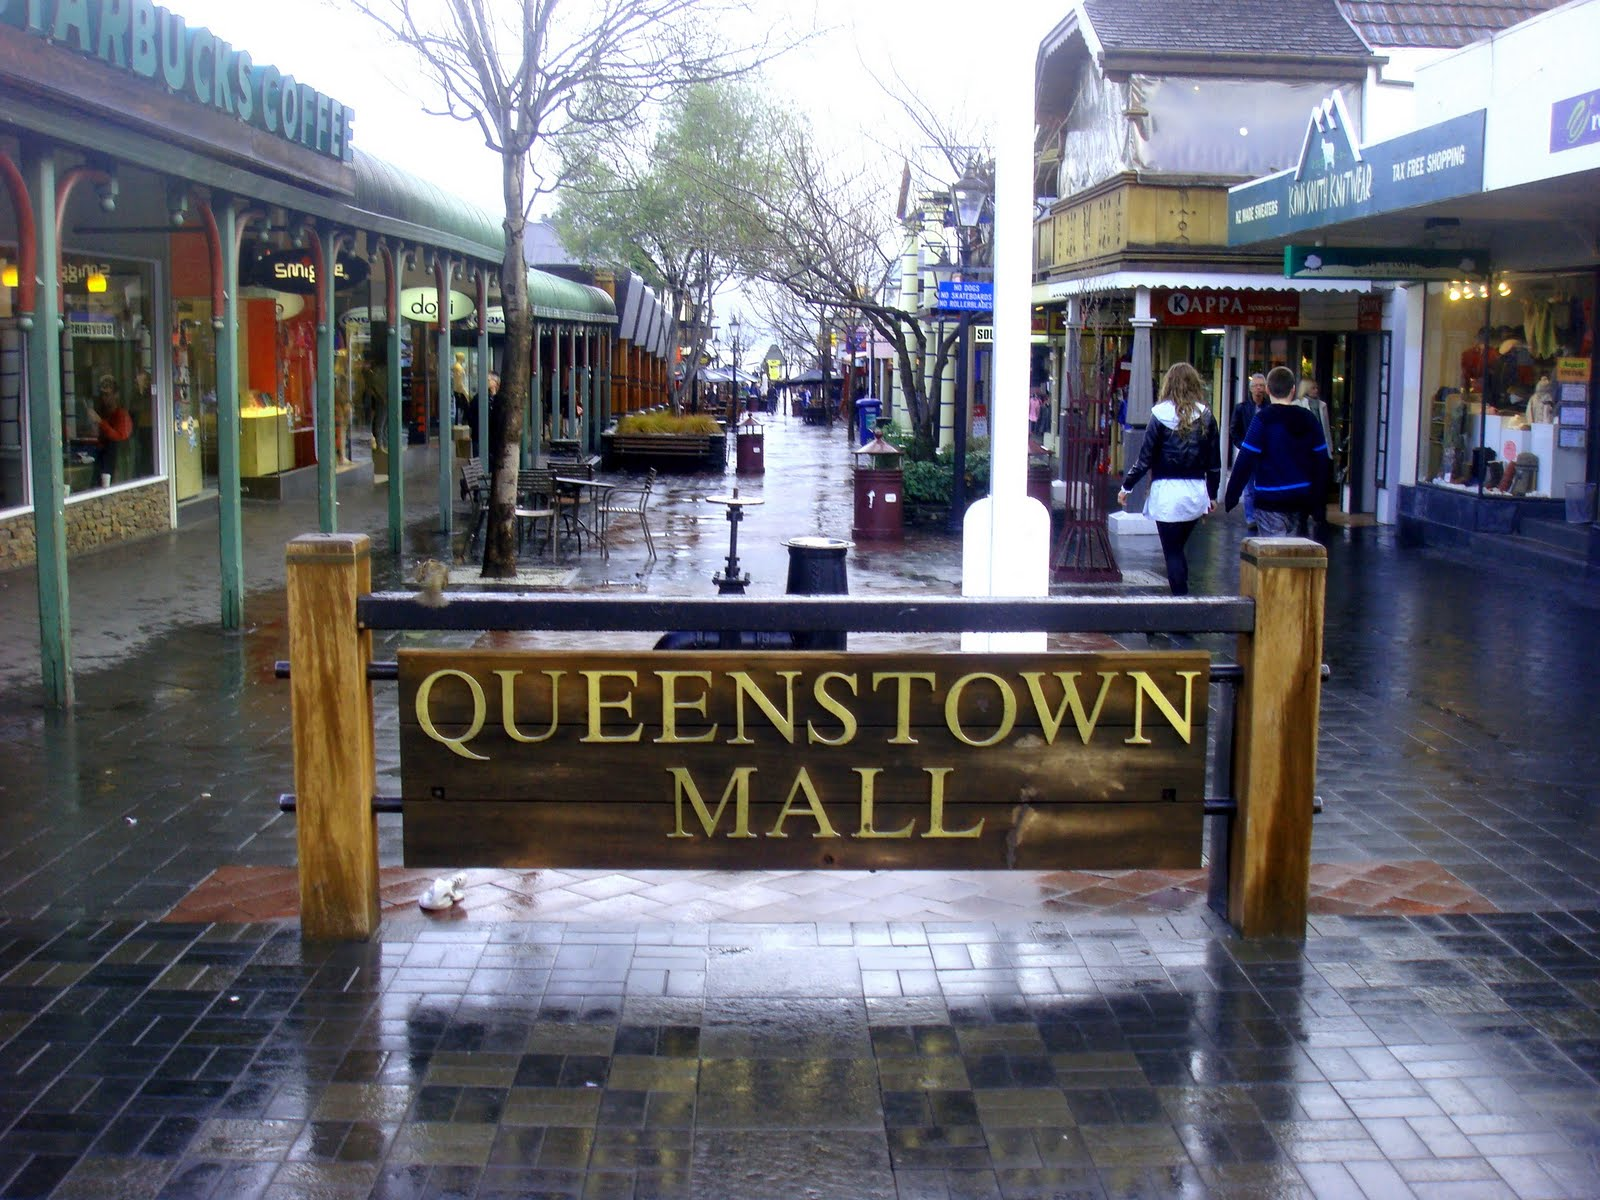 Shopping in Queenstown. Queenstown is a great place to shop. Whether it's a unique souvenir, high street names, exclusive Kiwi labels, or just your everyday basics, Shopping in Queenstown is a browser's delight.